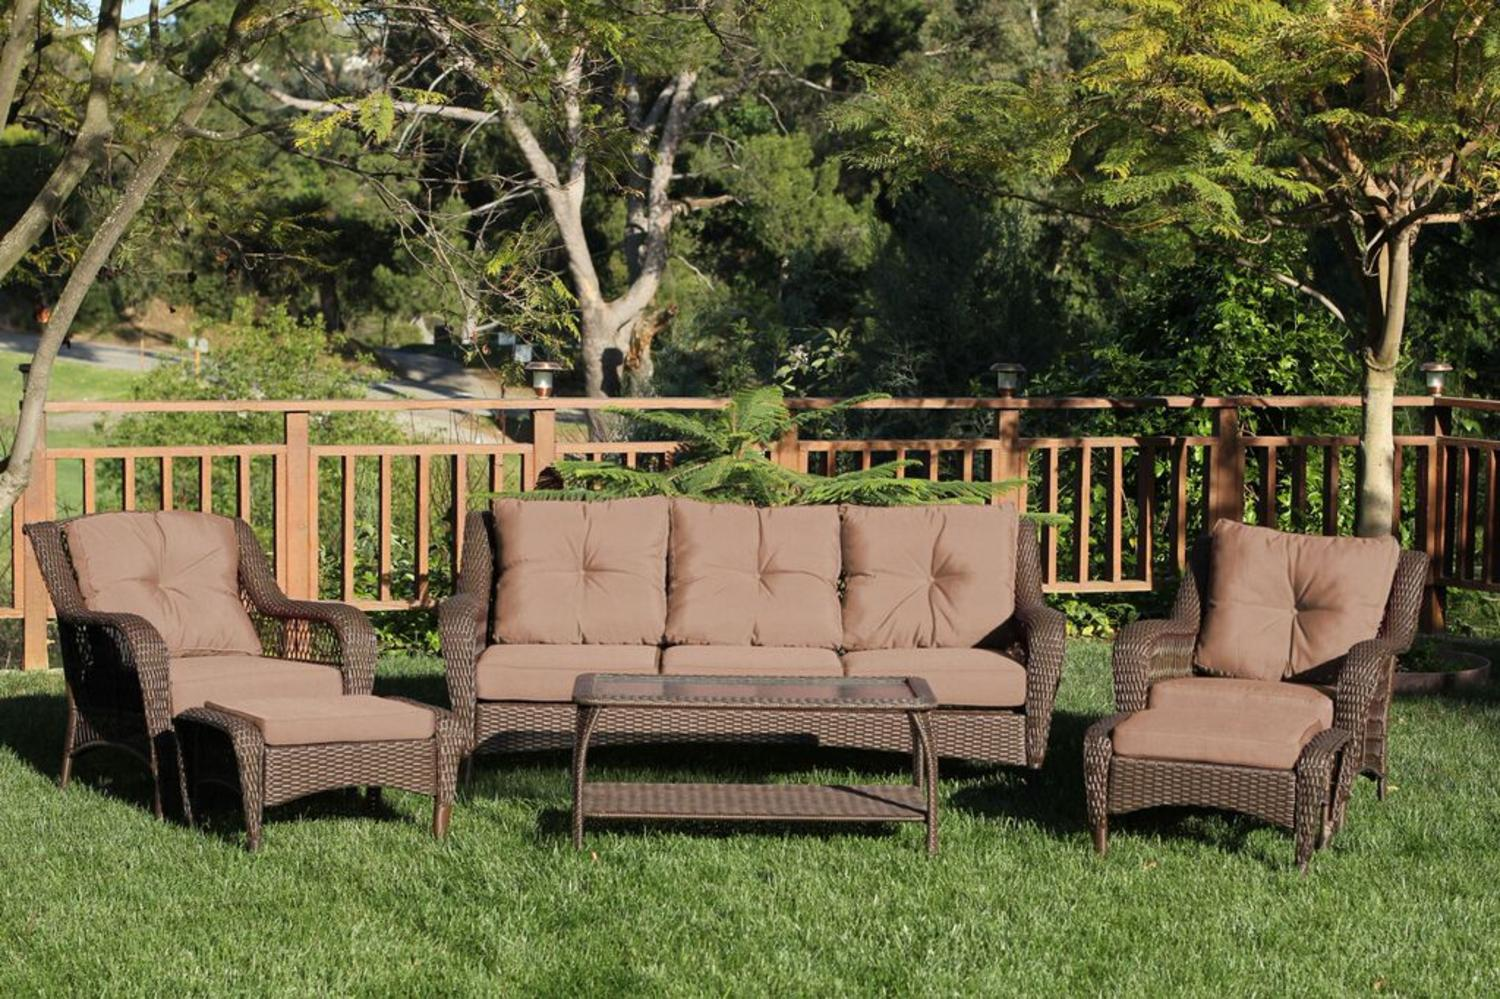 6 Piece Espresso Resin Wicker Outdoor Patio Seating Furniture Set   Brown  Cushions